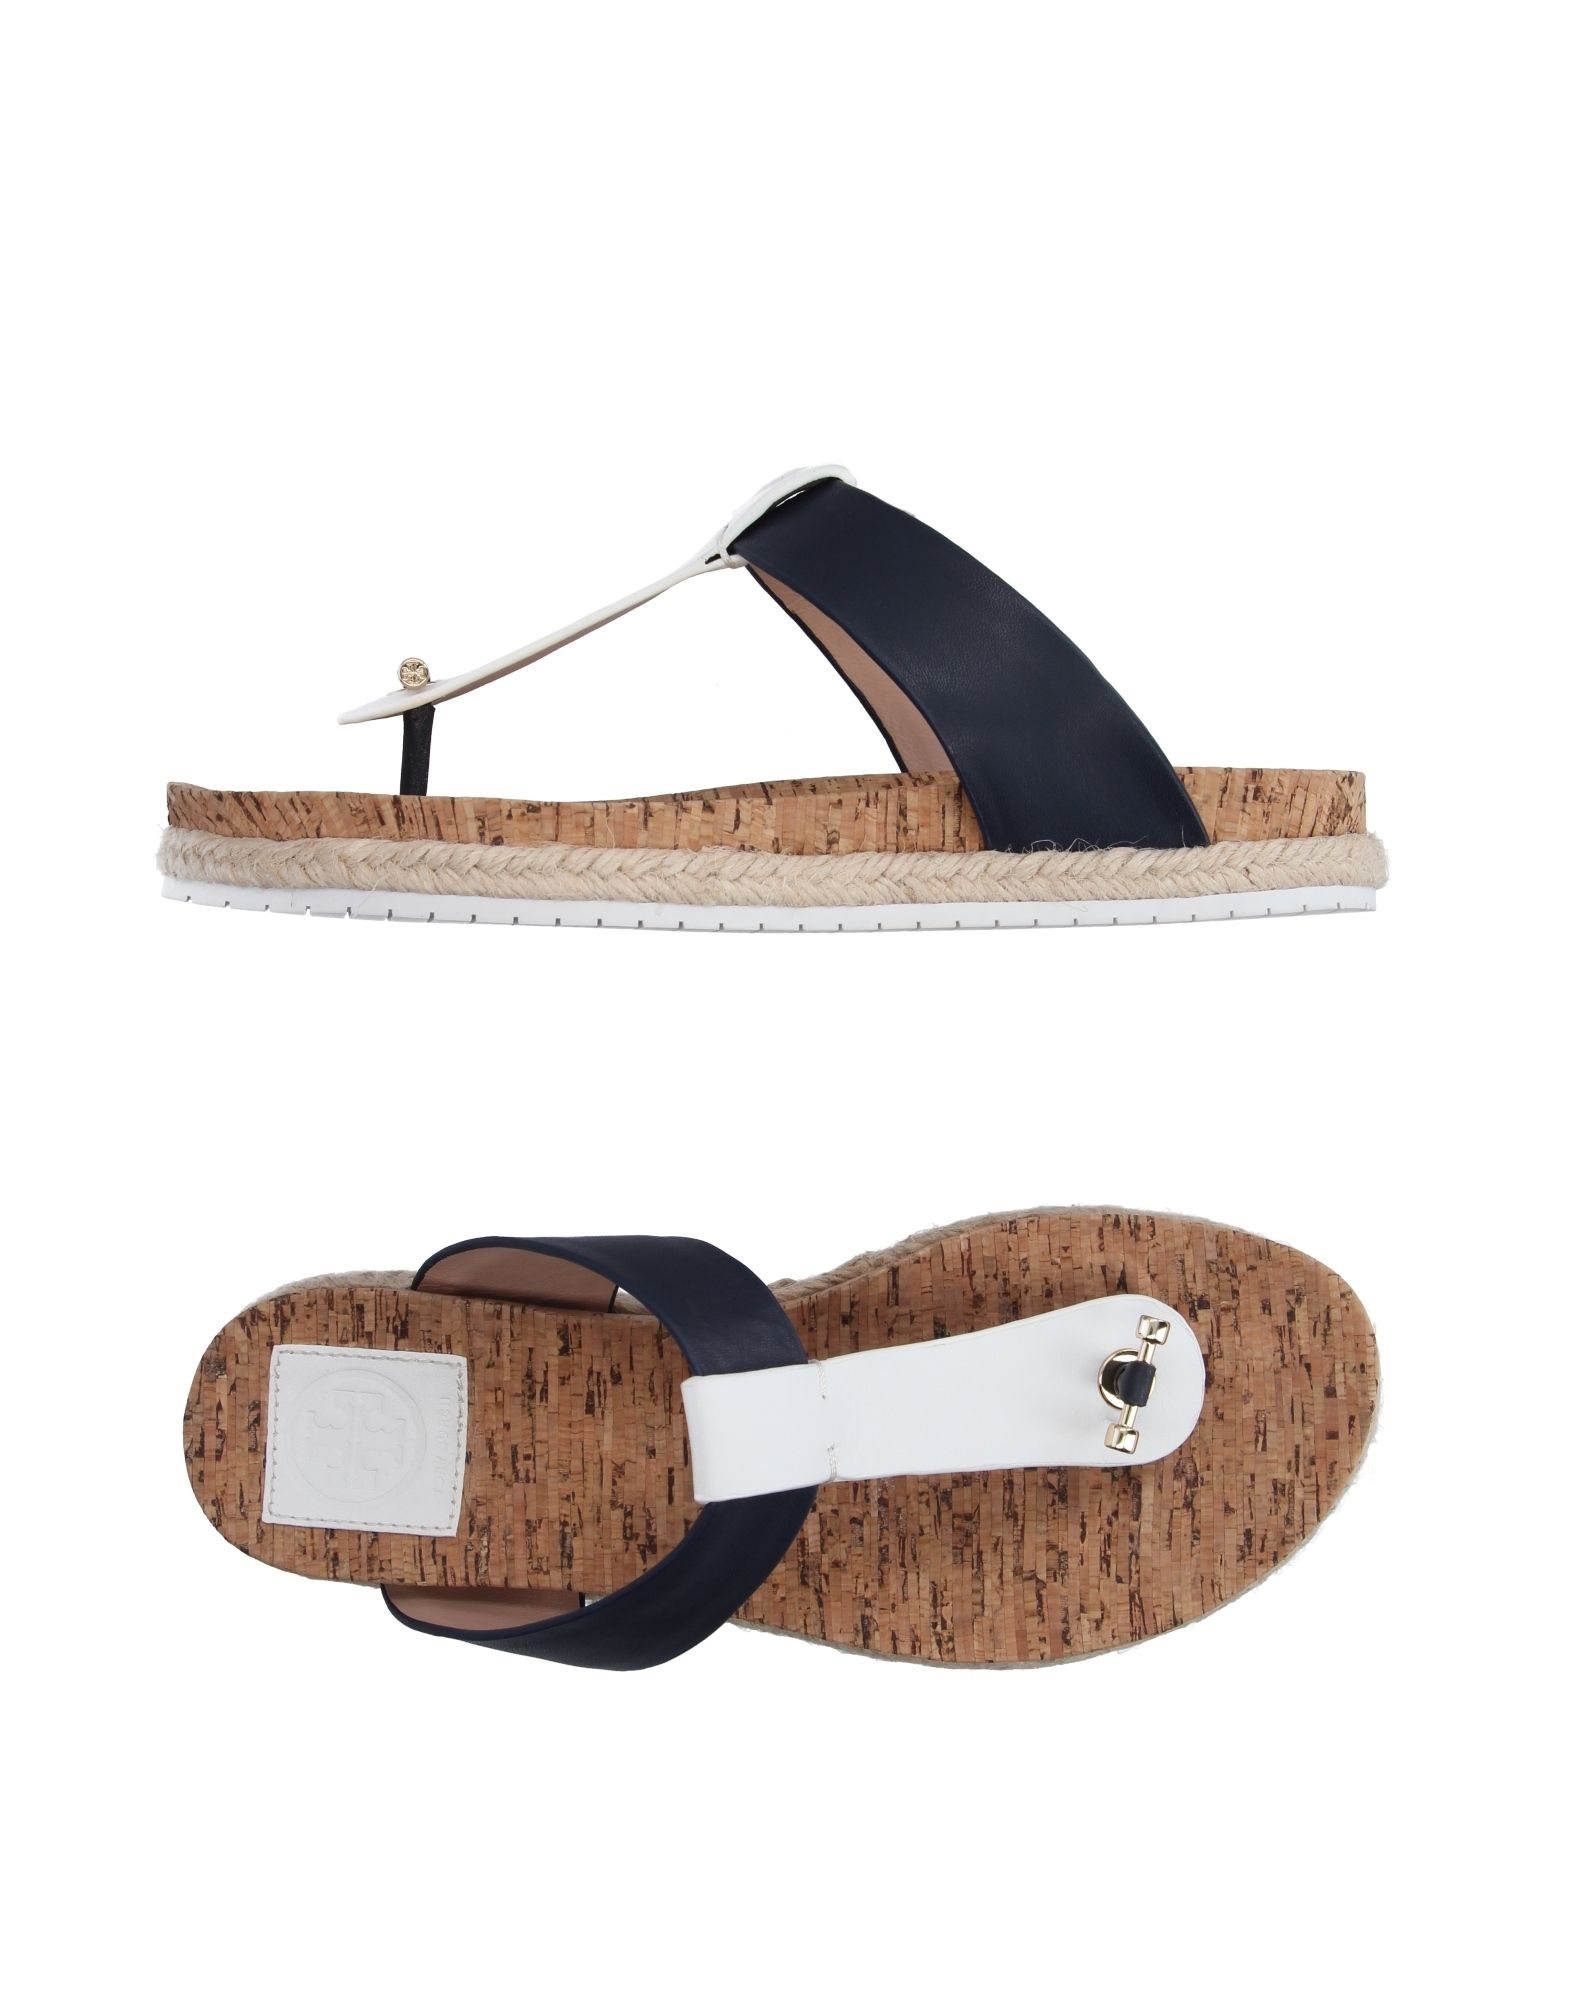 Tory on Burch Espadrilles - Women Tory Burch Espadrilles online on Tory  Australia - 11198367PH d89969